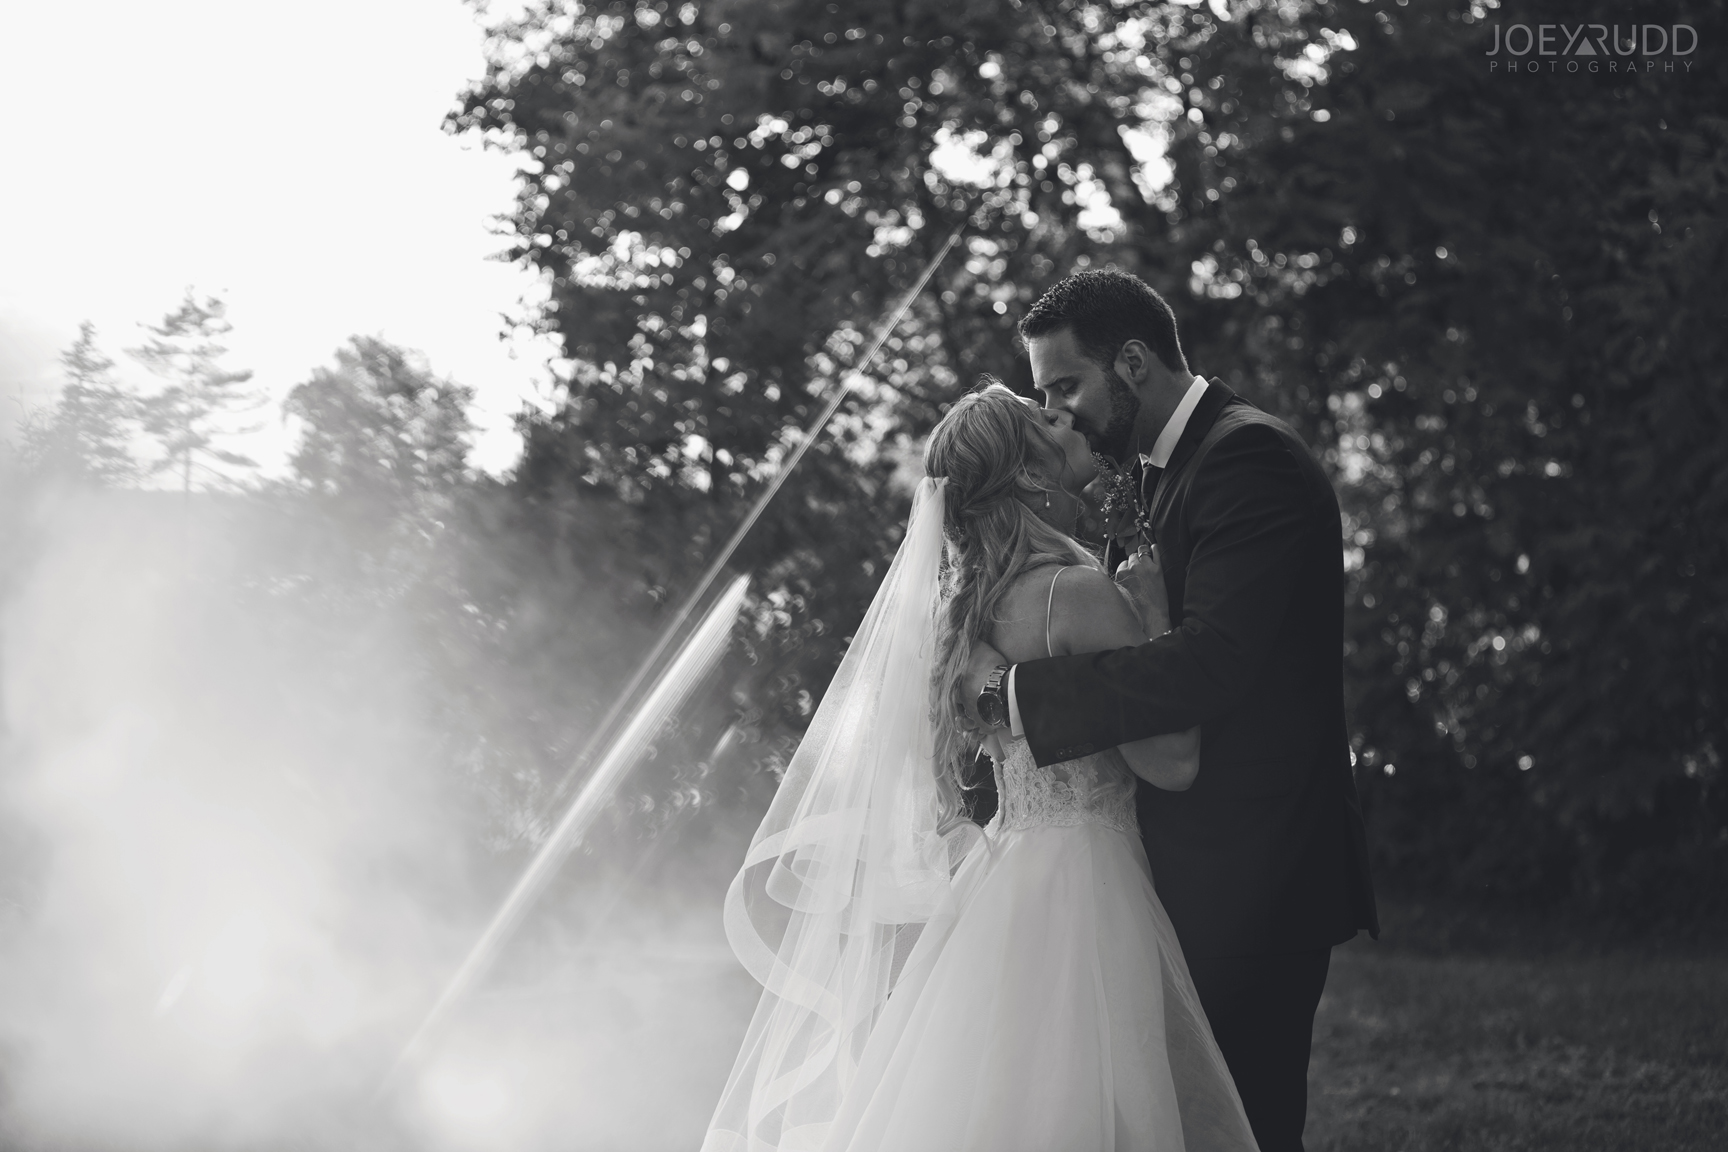 Calabogie Wedding at Barnet Park by Ottawa Wedding Photographer Joey Rudd Photography Prisiming